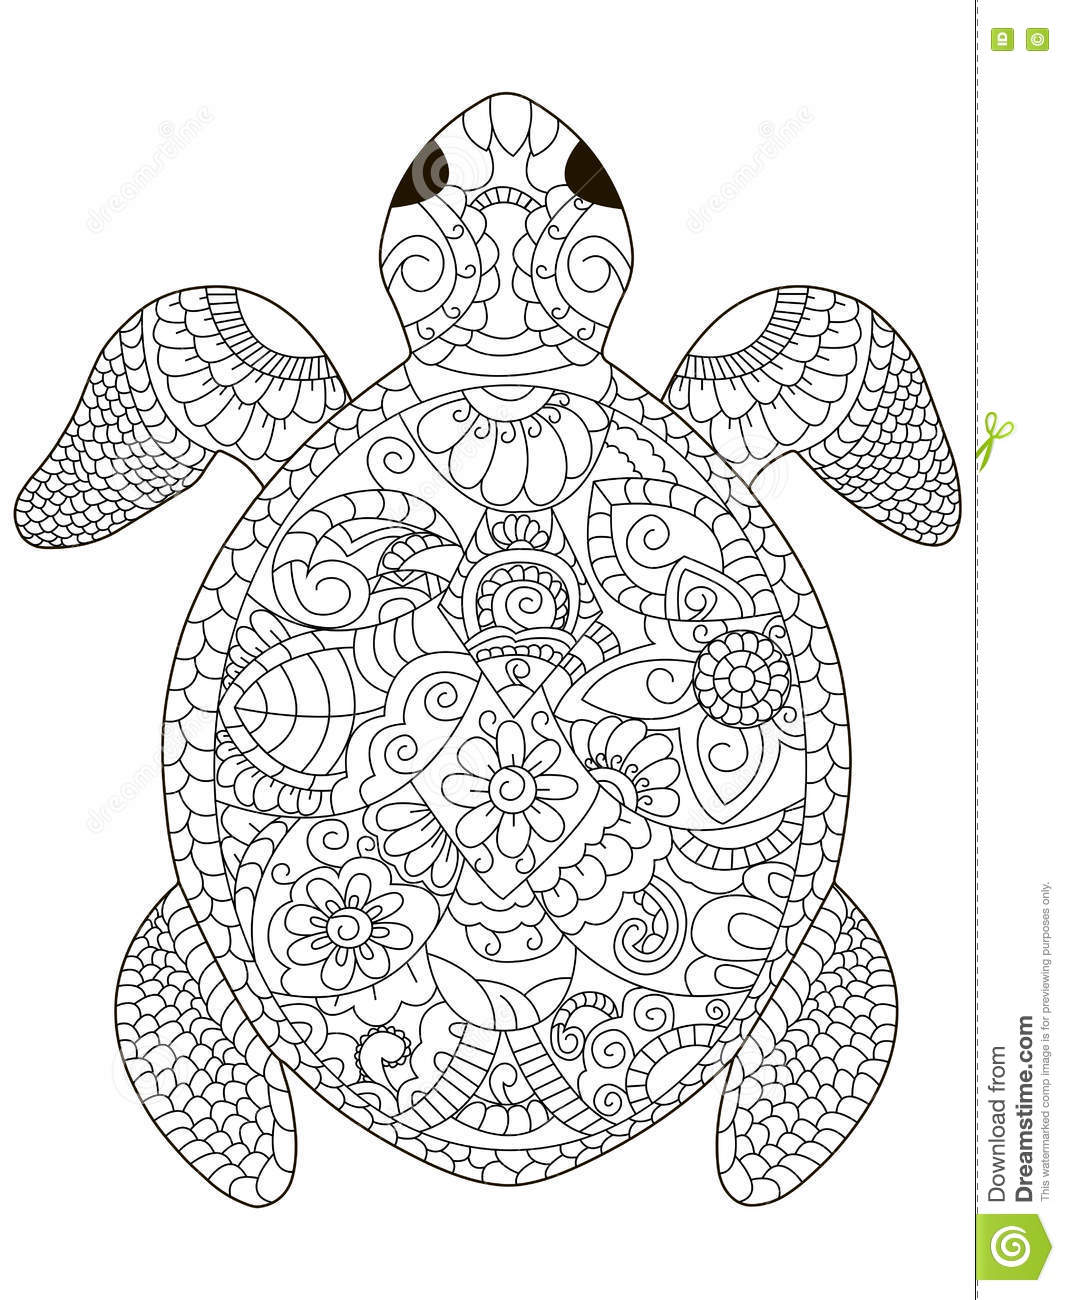 sea turtle coloring vector for adults stock vector image 81153943